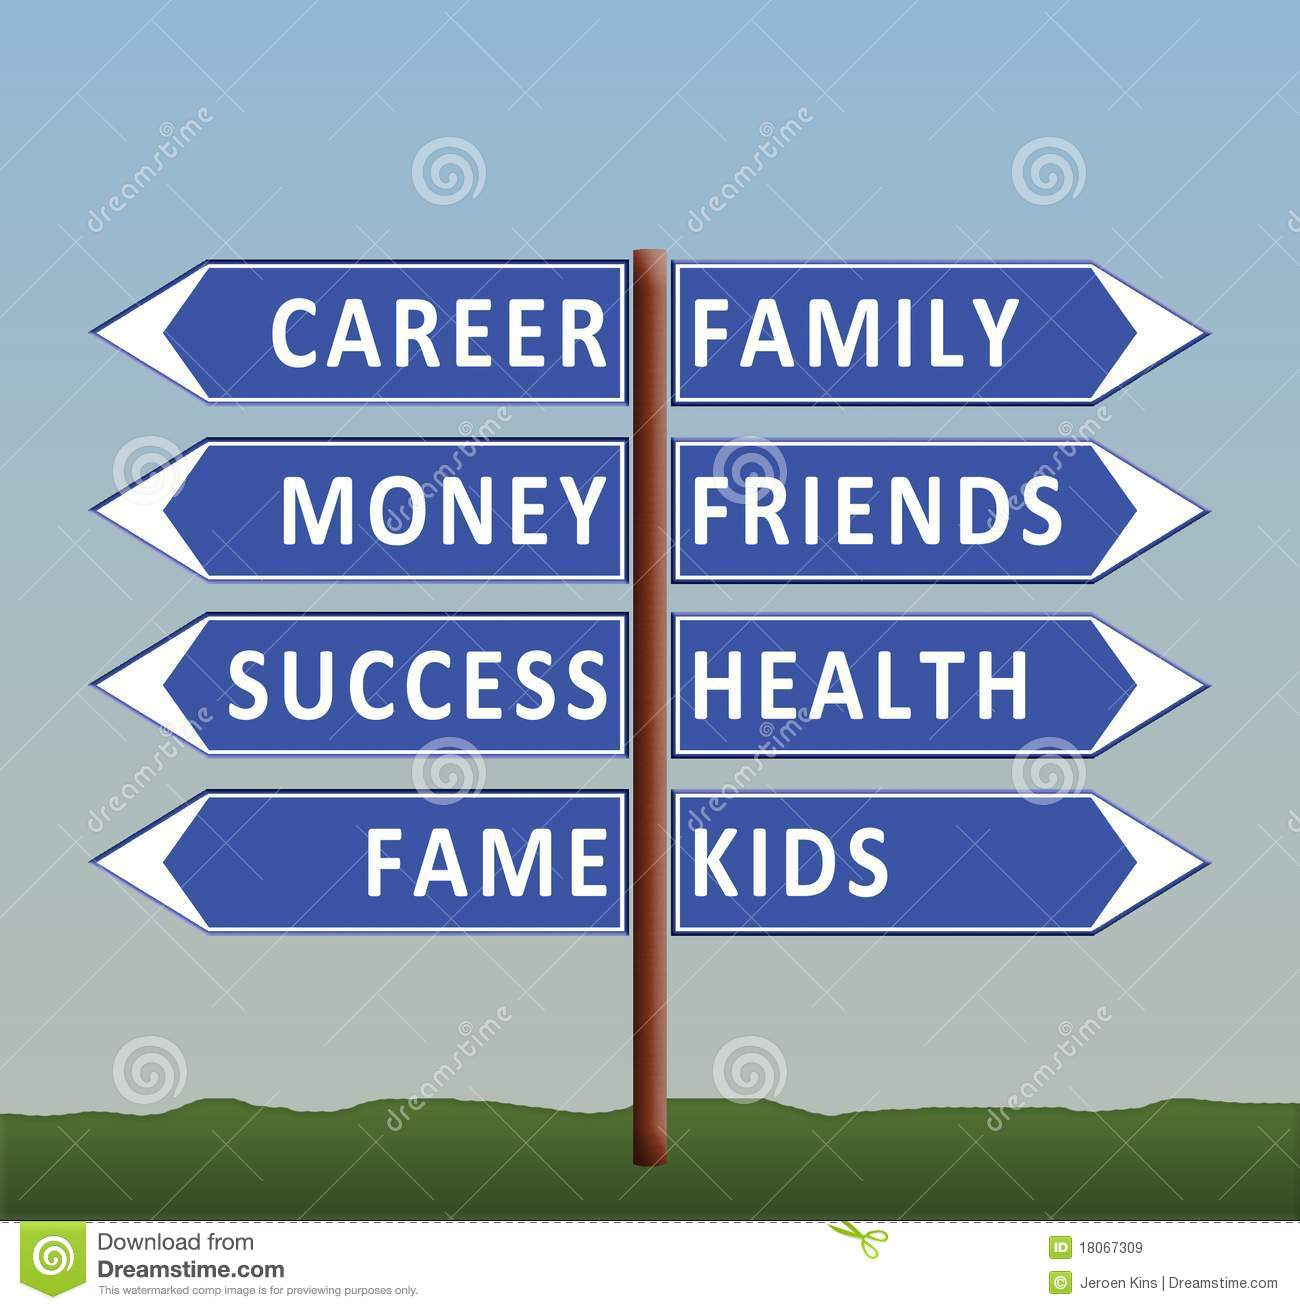 a comparison of two career family versus one career family This essay comparison between one-career and two-career family is available for you on essays24com status inequality and the division into two functional roles, wherein the male takes the income provider role and the wife takes the homemaker role, carved the power structure of the.